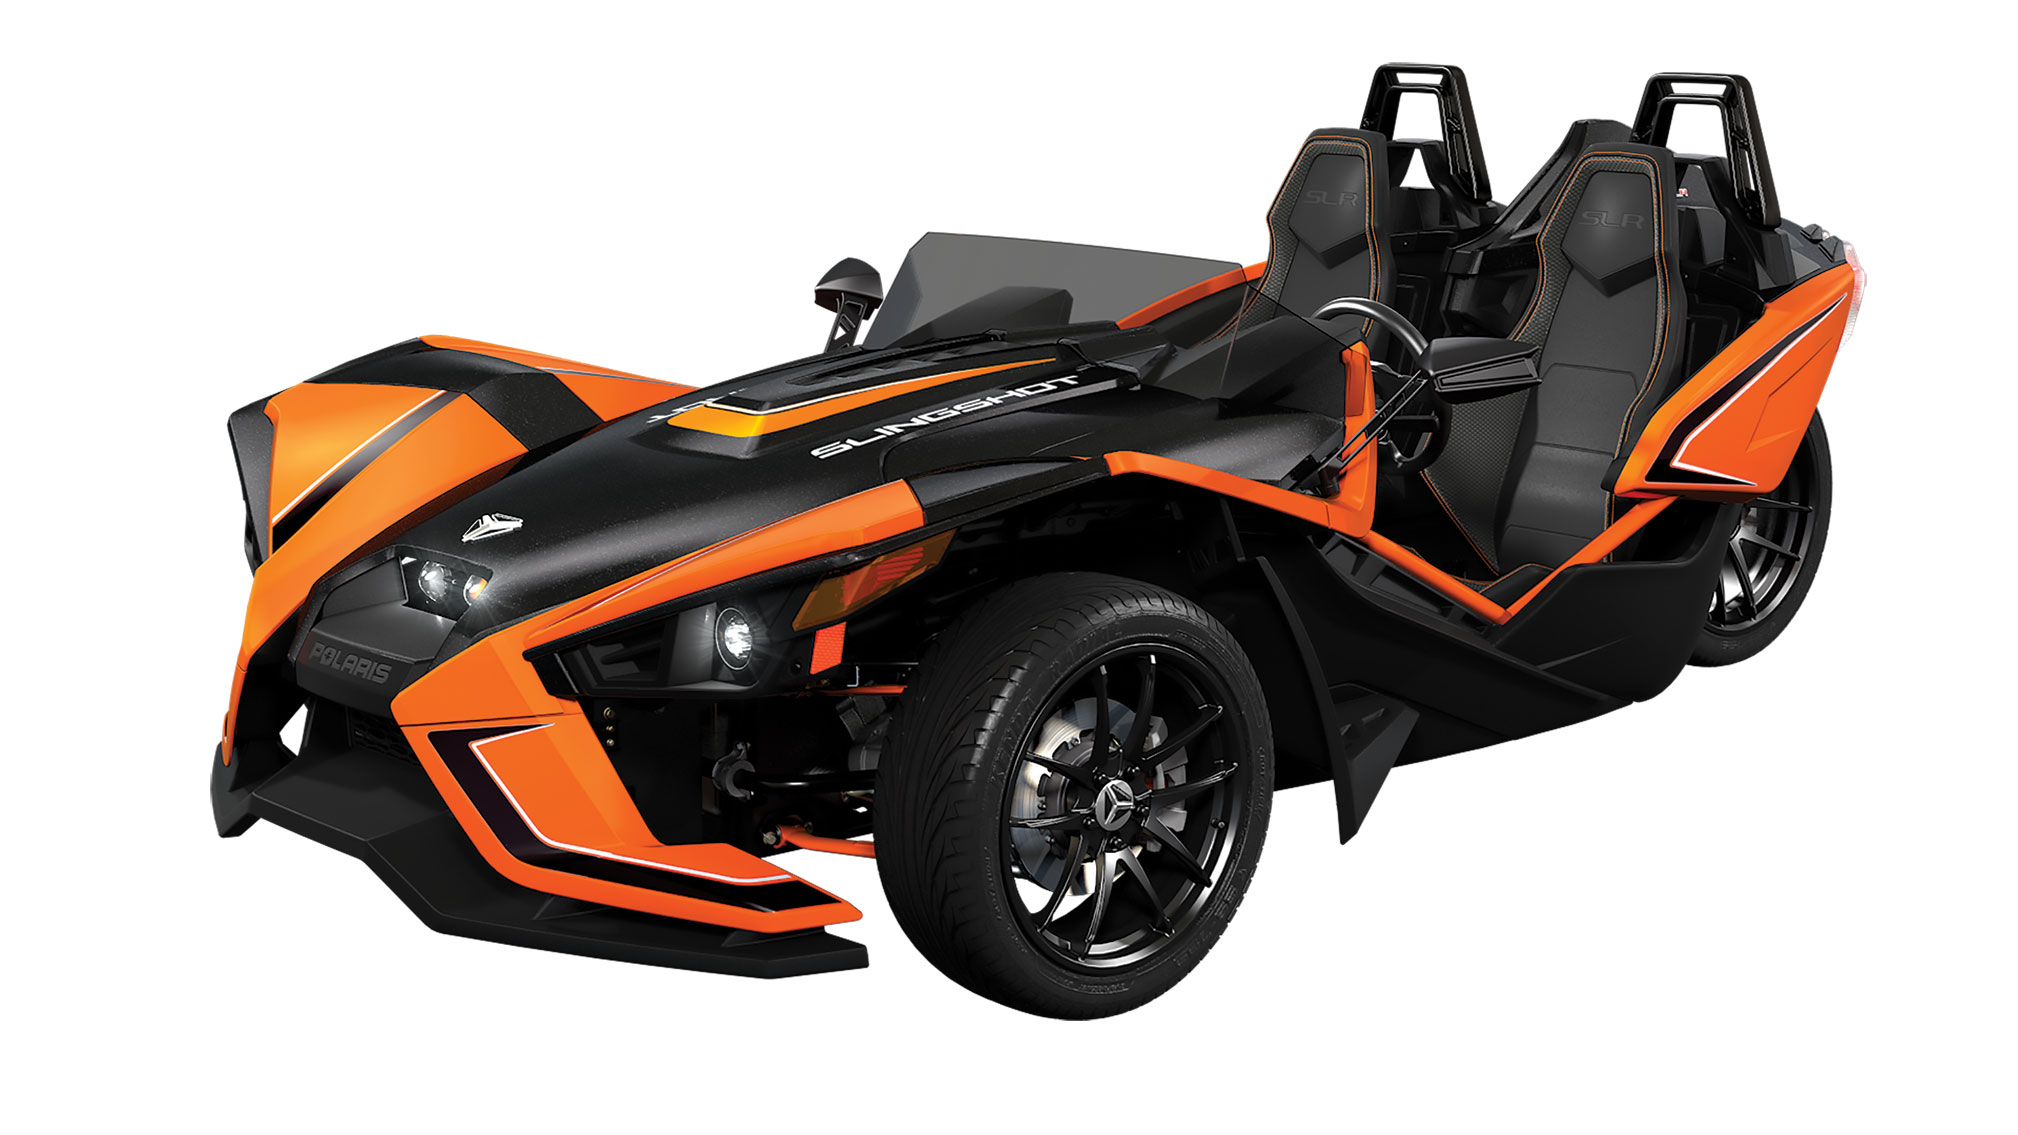 2018 Slingshot >> 2018 Polaris Slingshot SLR Review - TotalMotorcycle